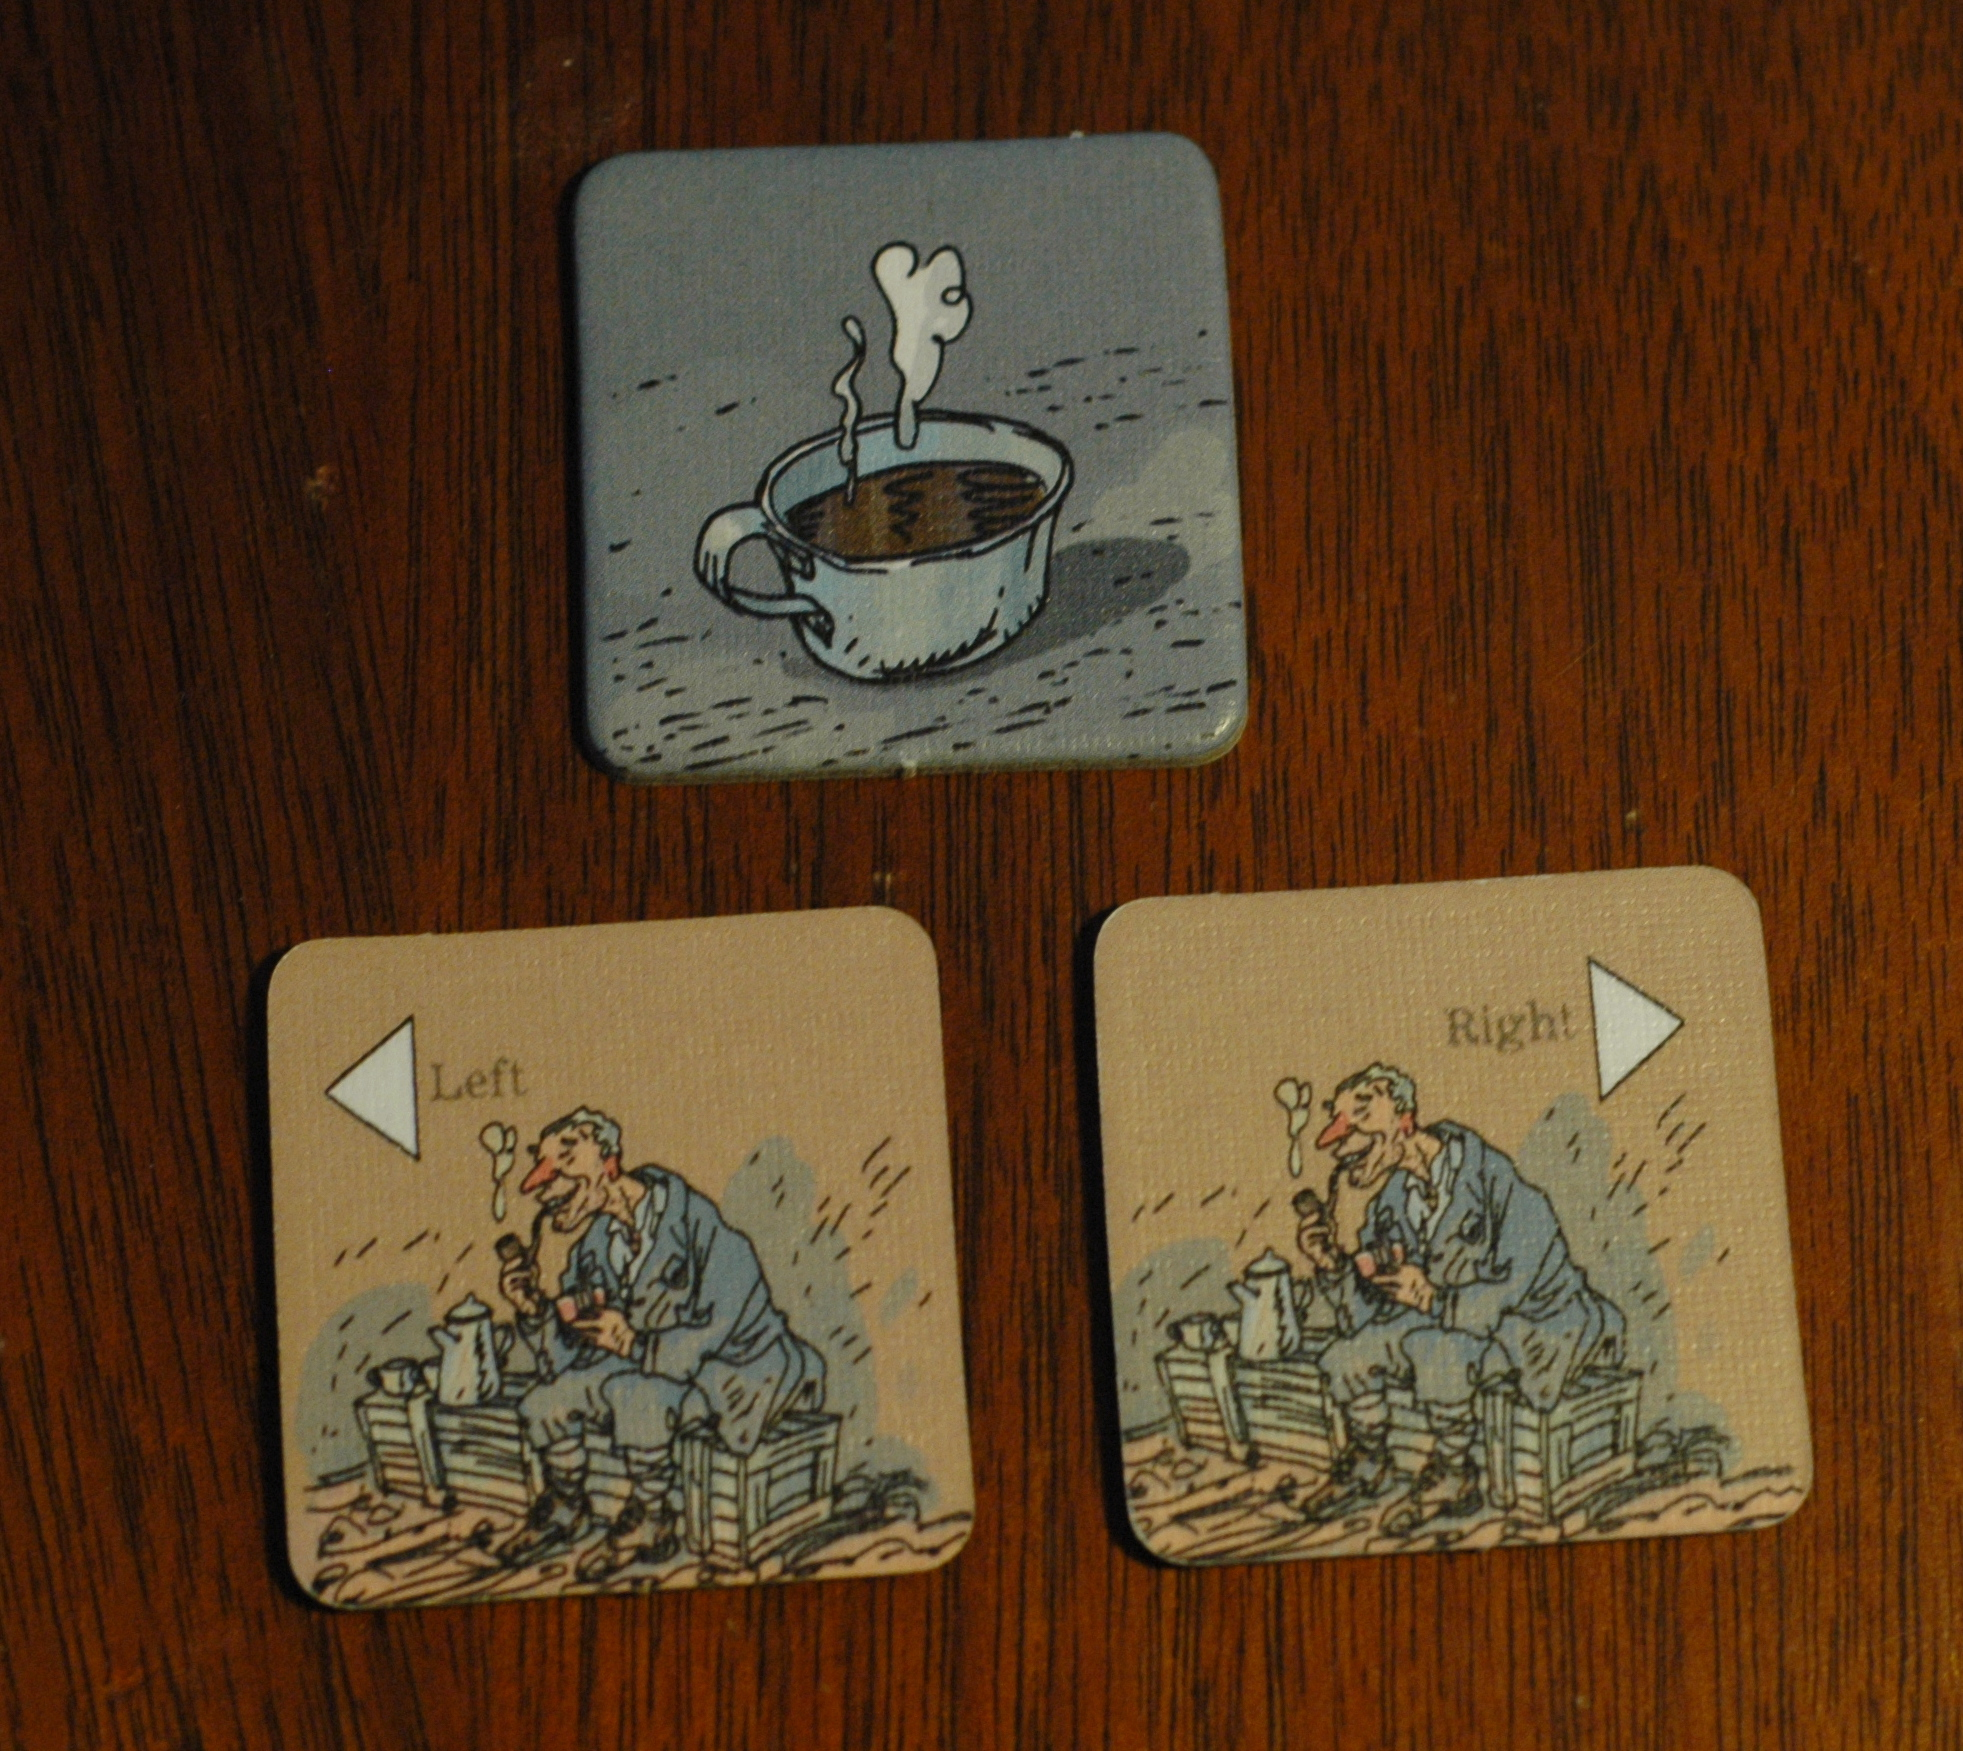 Players assign support facedown (coffee side up), then reveal one arrow. Double-left and double-right tiles also exist. Photo used with permission of the author and used for purposes of critique.